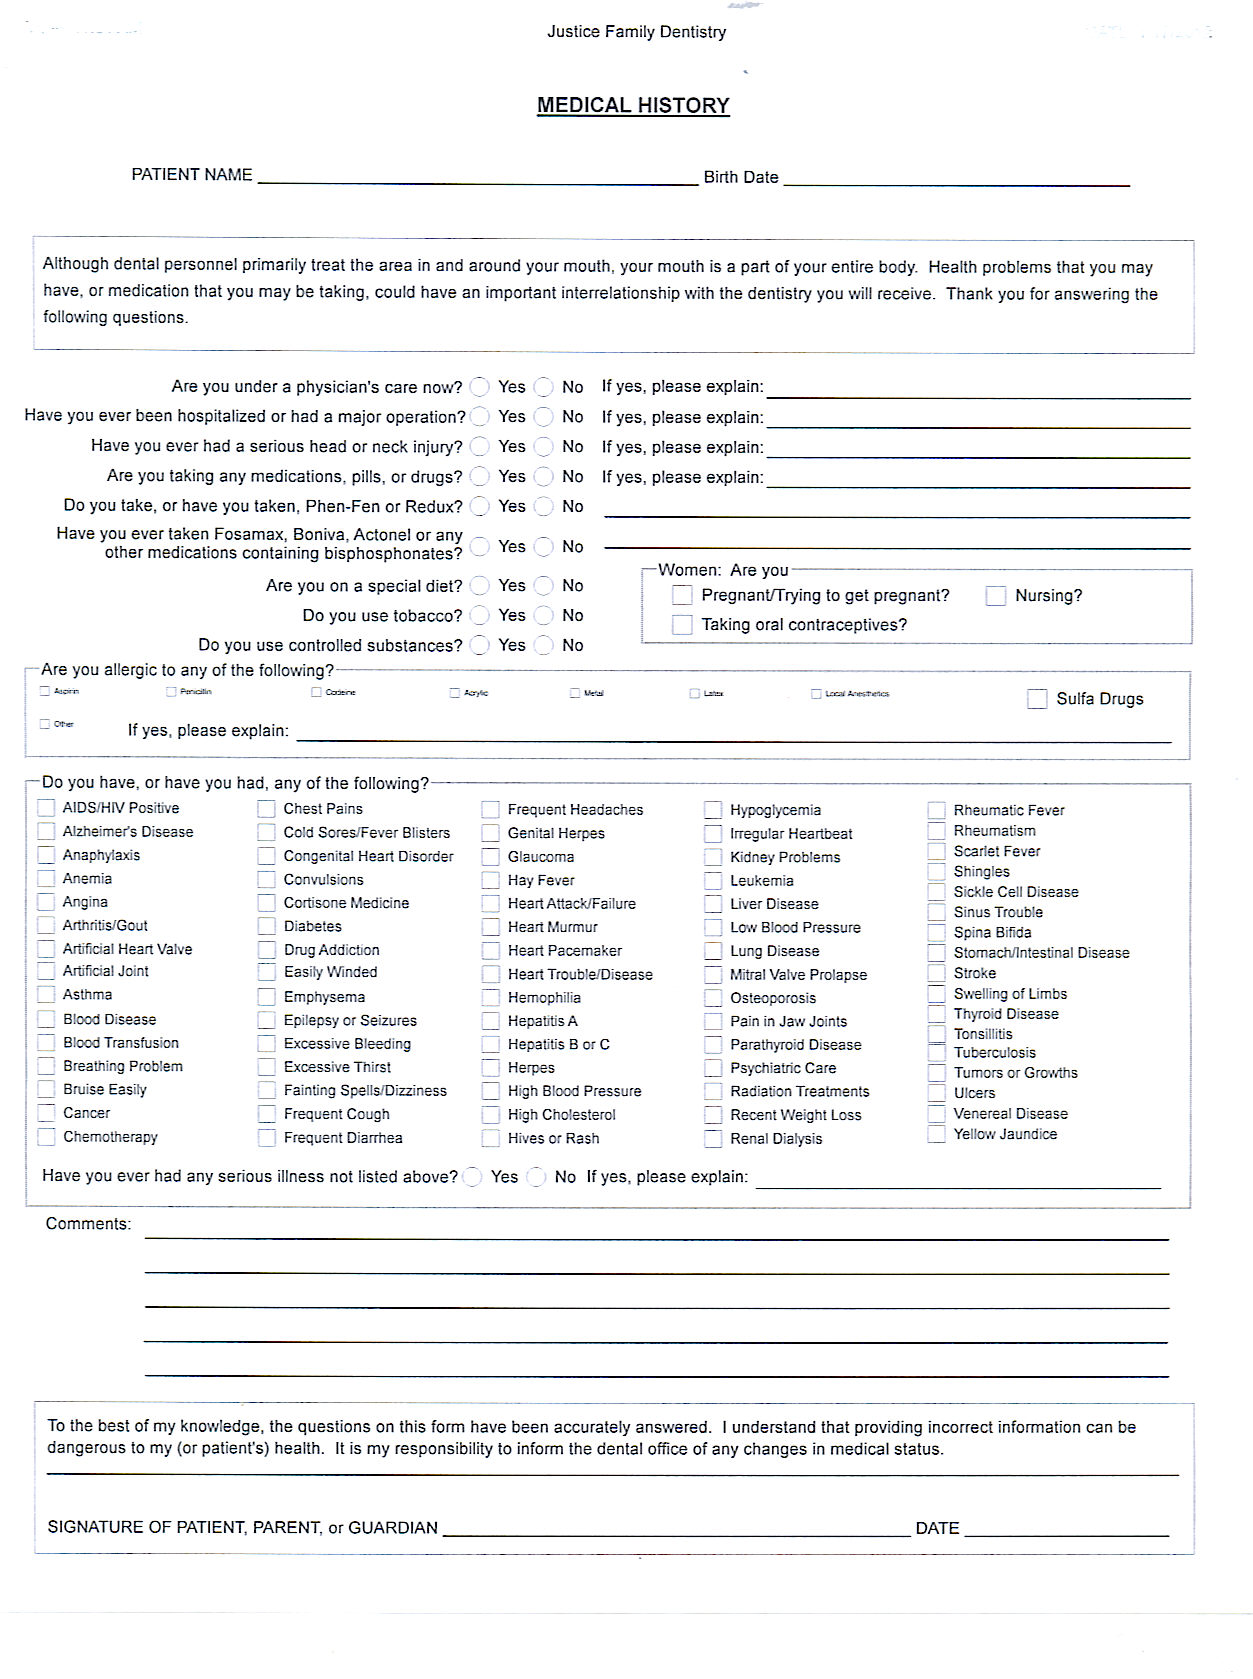 Amazing Medical History Forms Templates